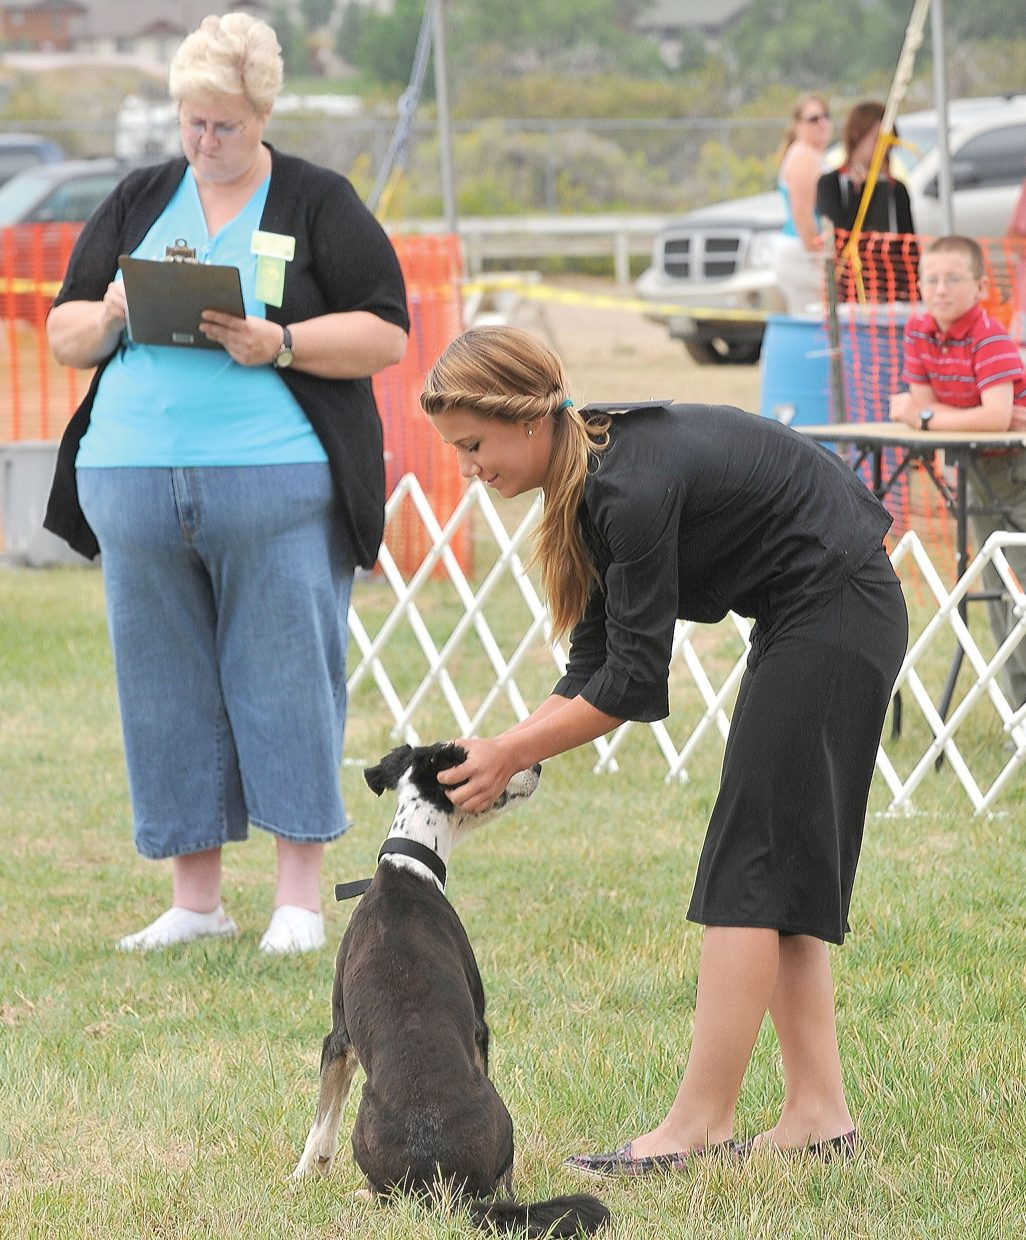 Jewel Vreeman scratches Selina behind the ears after completing an exercise at the Routt County Fair's dog show Monday morning. Eight competitors showed their dogs in a number of different classes at the dog show, which traditionally is one of the first events of the week at the annual fair.